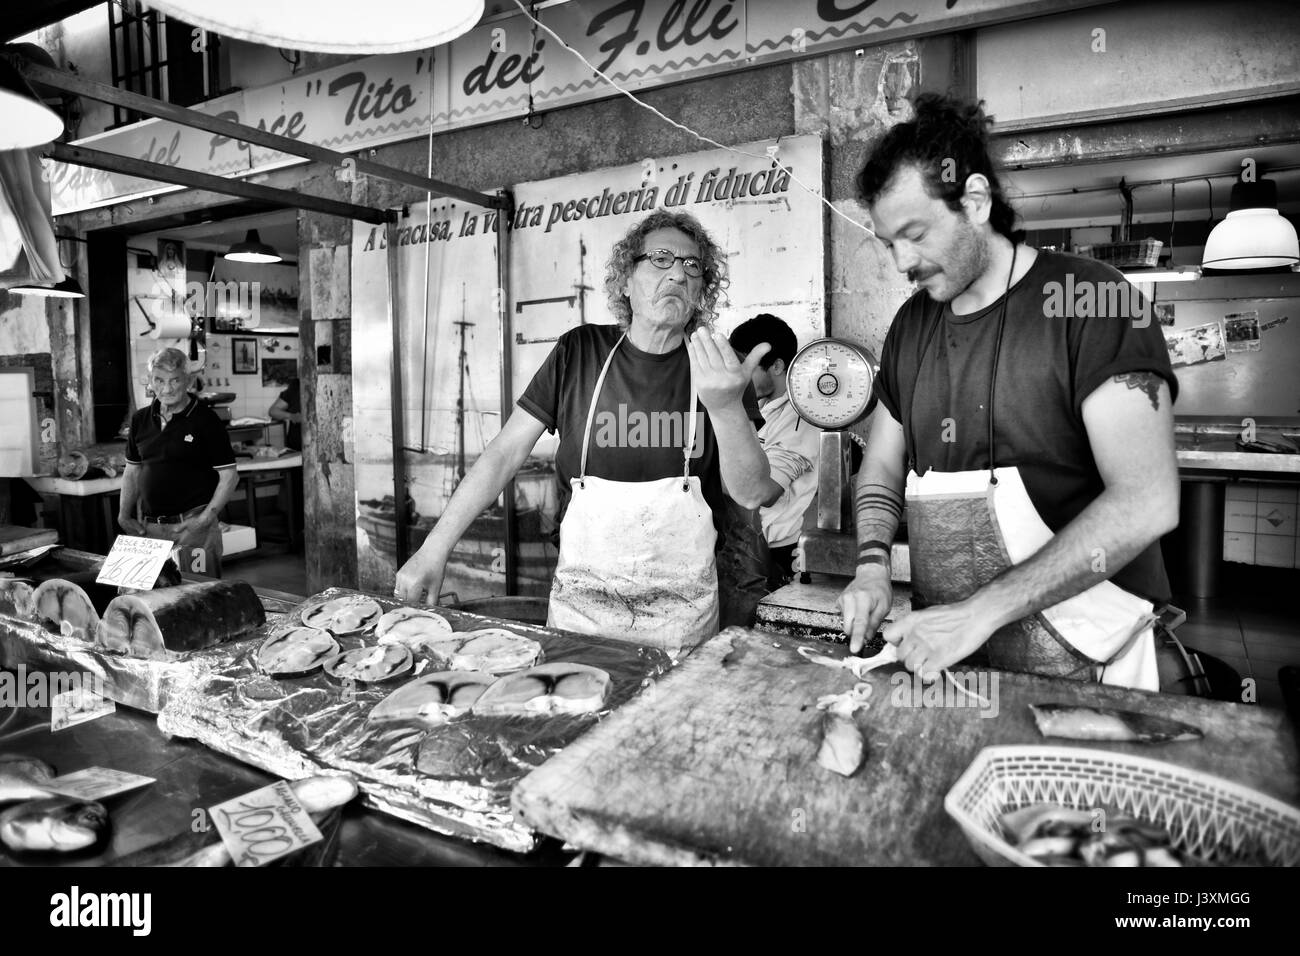 Reportage Photographs of Italian Mediterranean Food and Fish Market - Stock Image